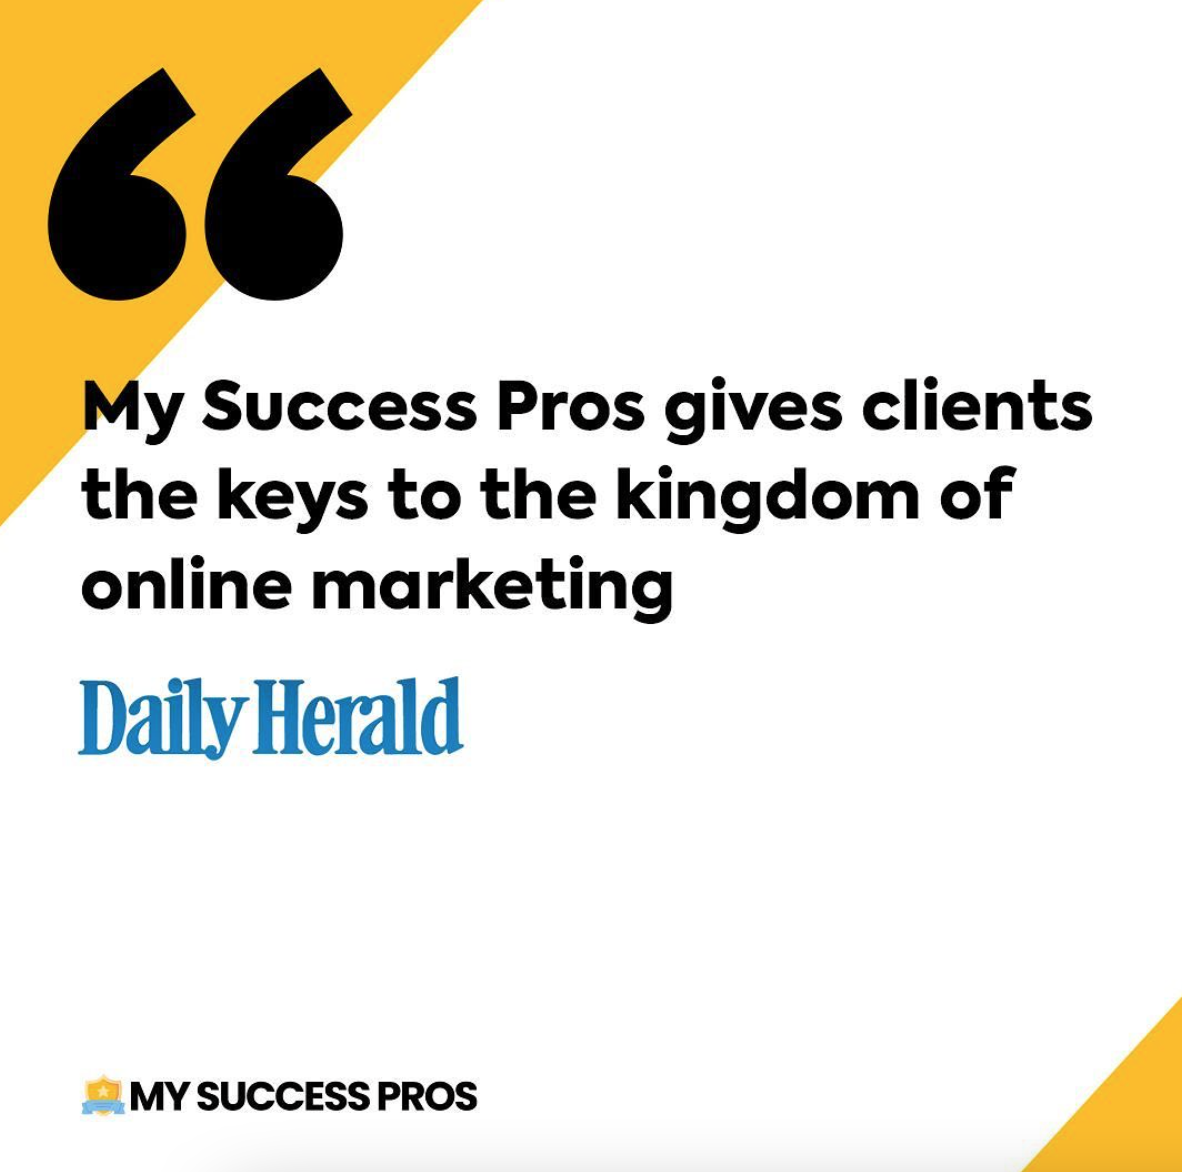 Digital Marketing: Are You Missing The Mark? My Success Pros Shares Their Best Tips